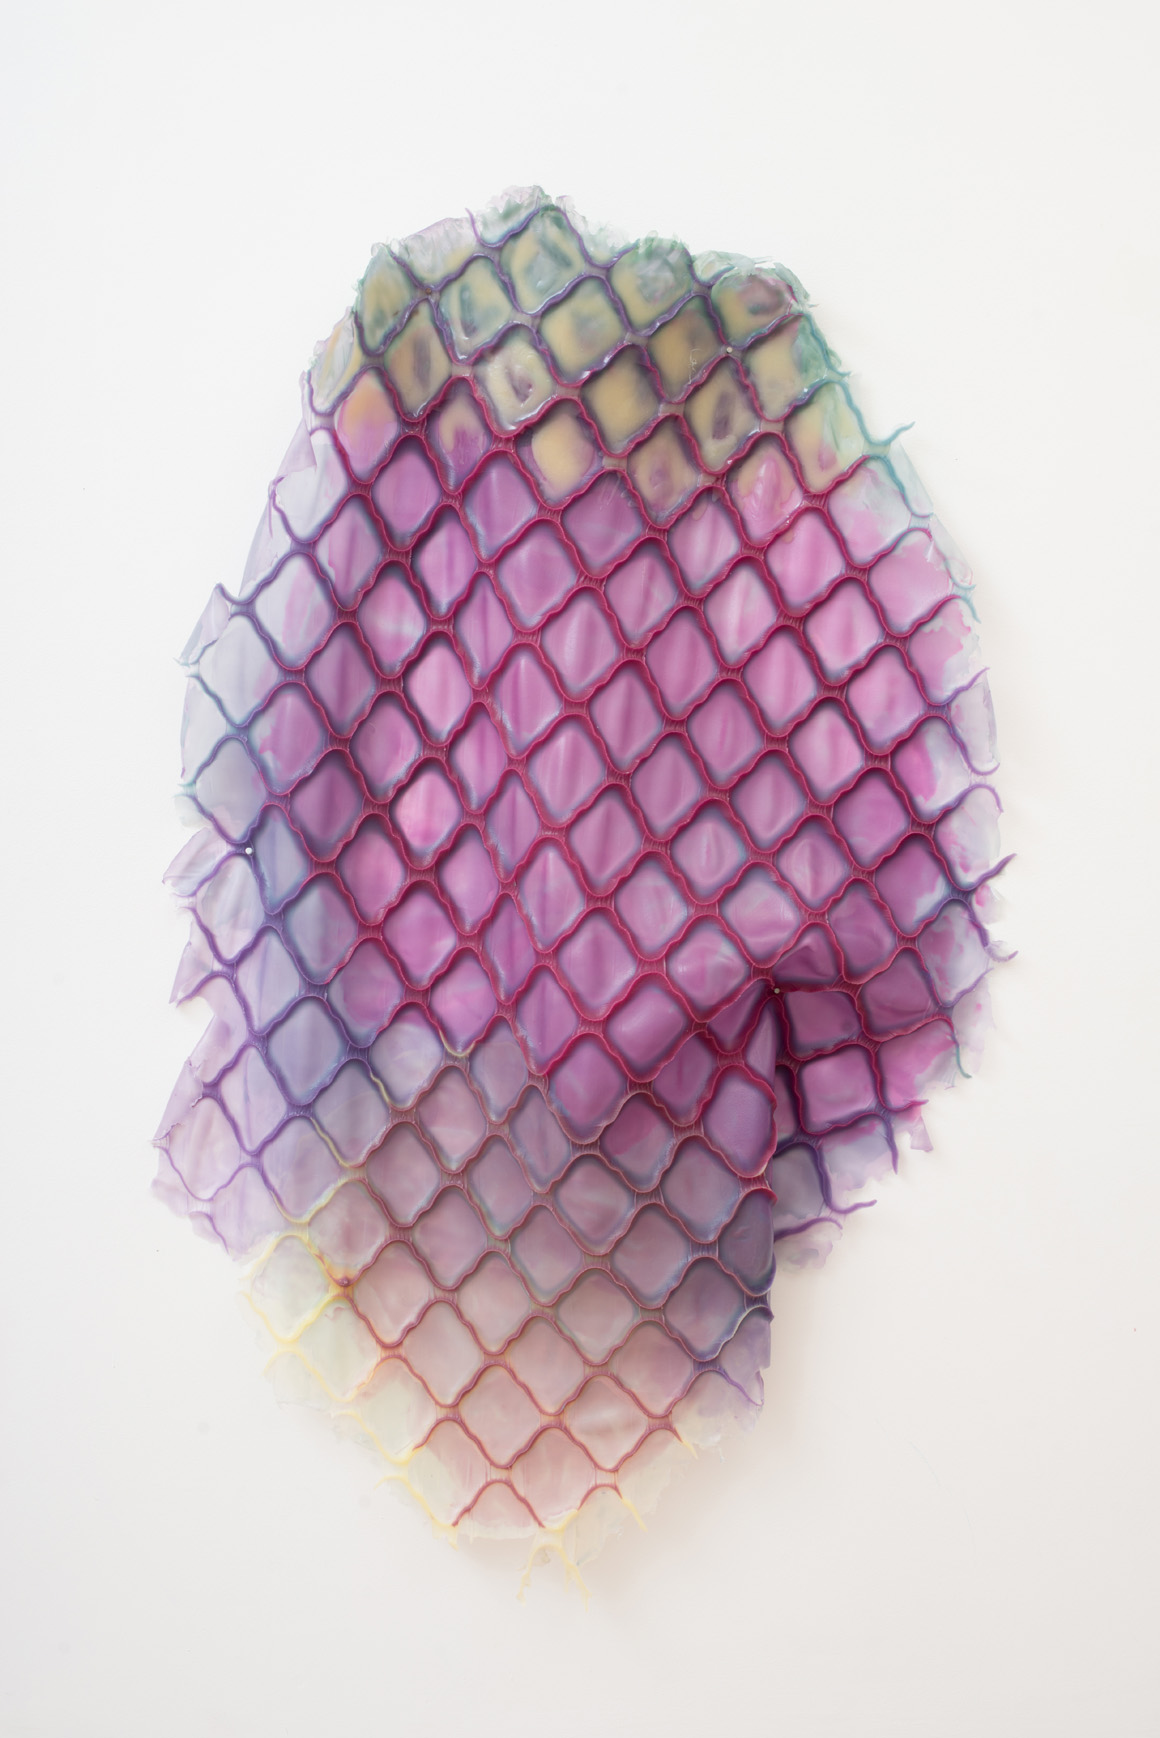 <p><em>Lash (Fragile Terms Loom Within)</em><span class='media'>Silicone</span>Size Variable: Approximately 60 x 52in | 142 x 152.5cm<br>2018<br></p>